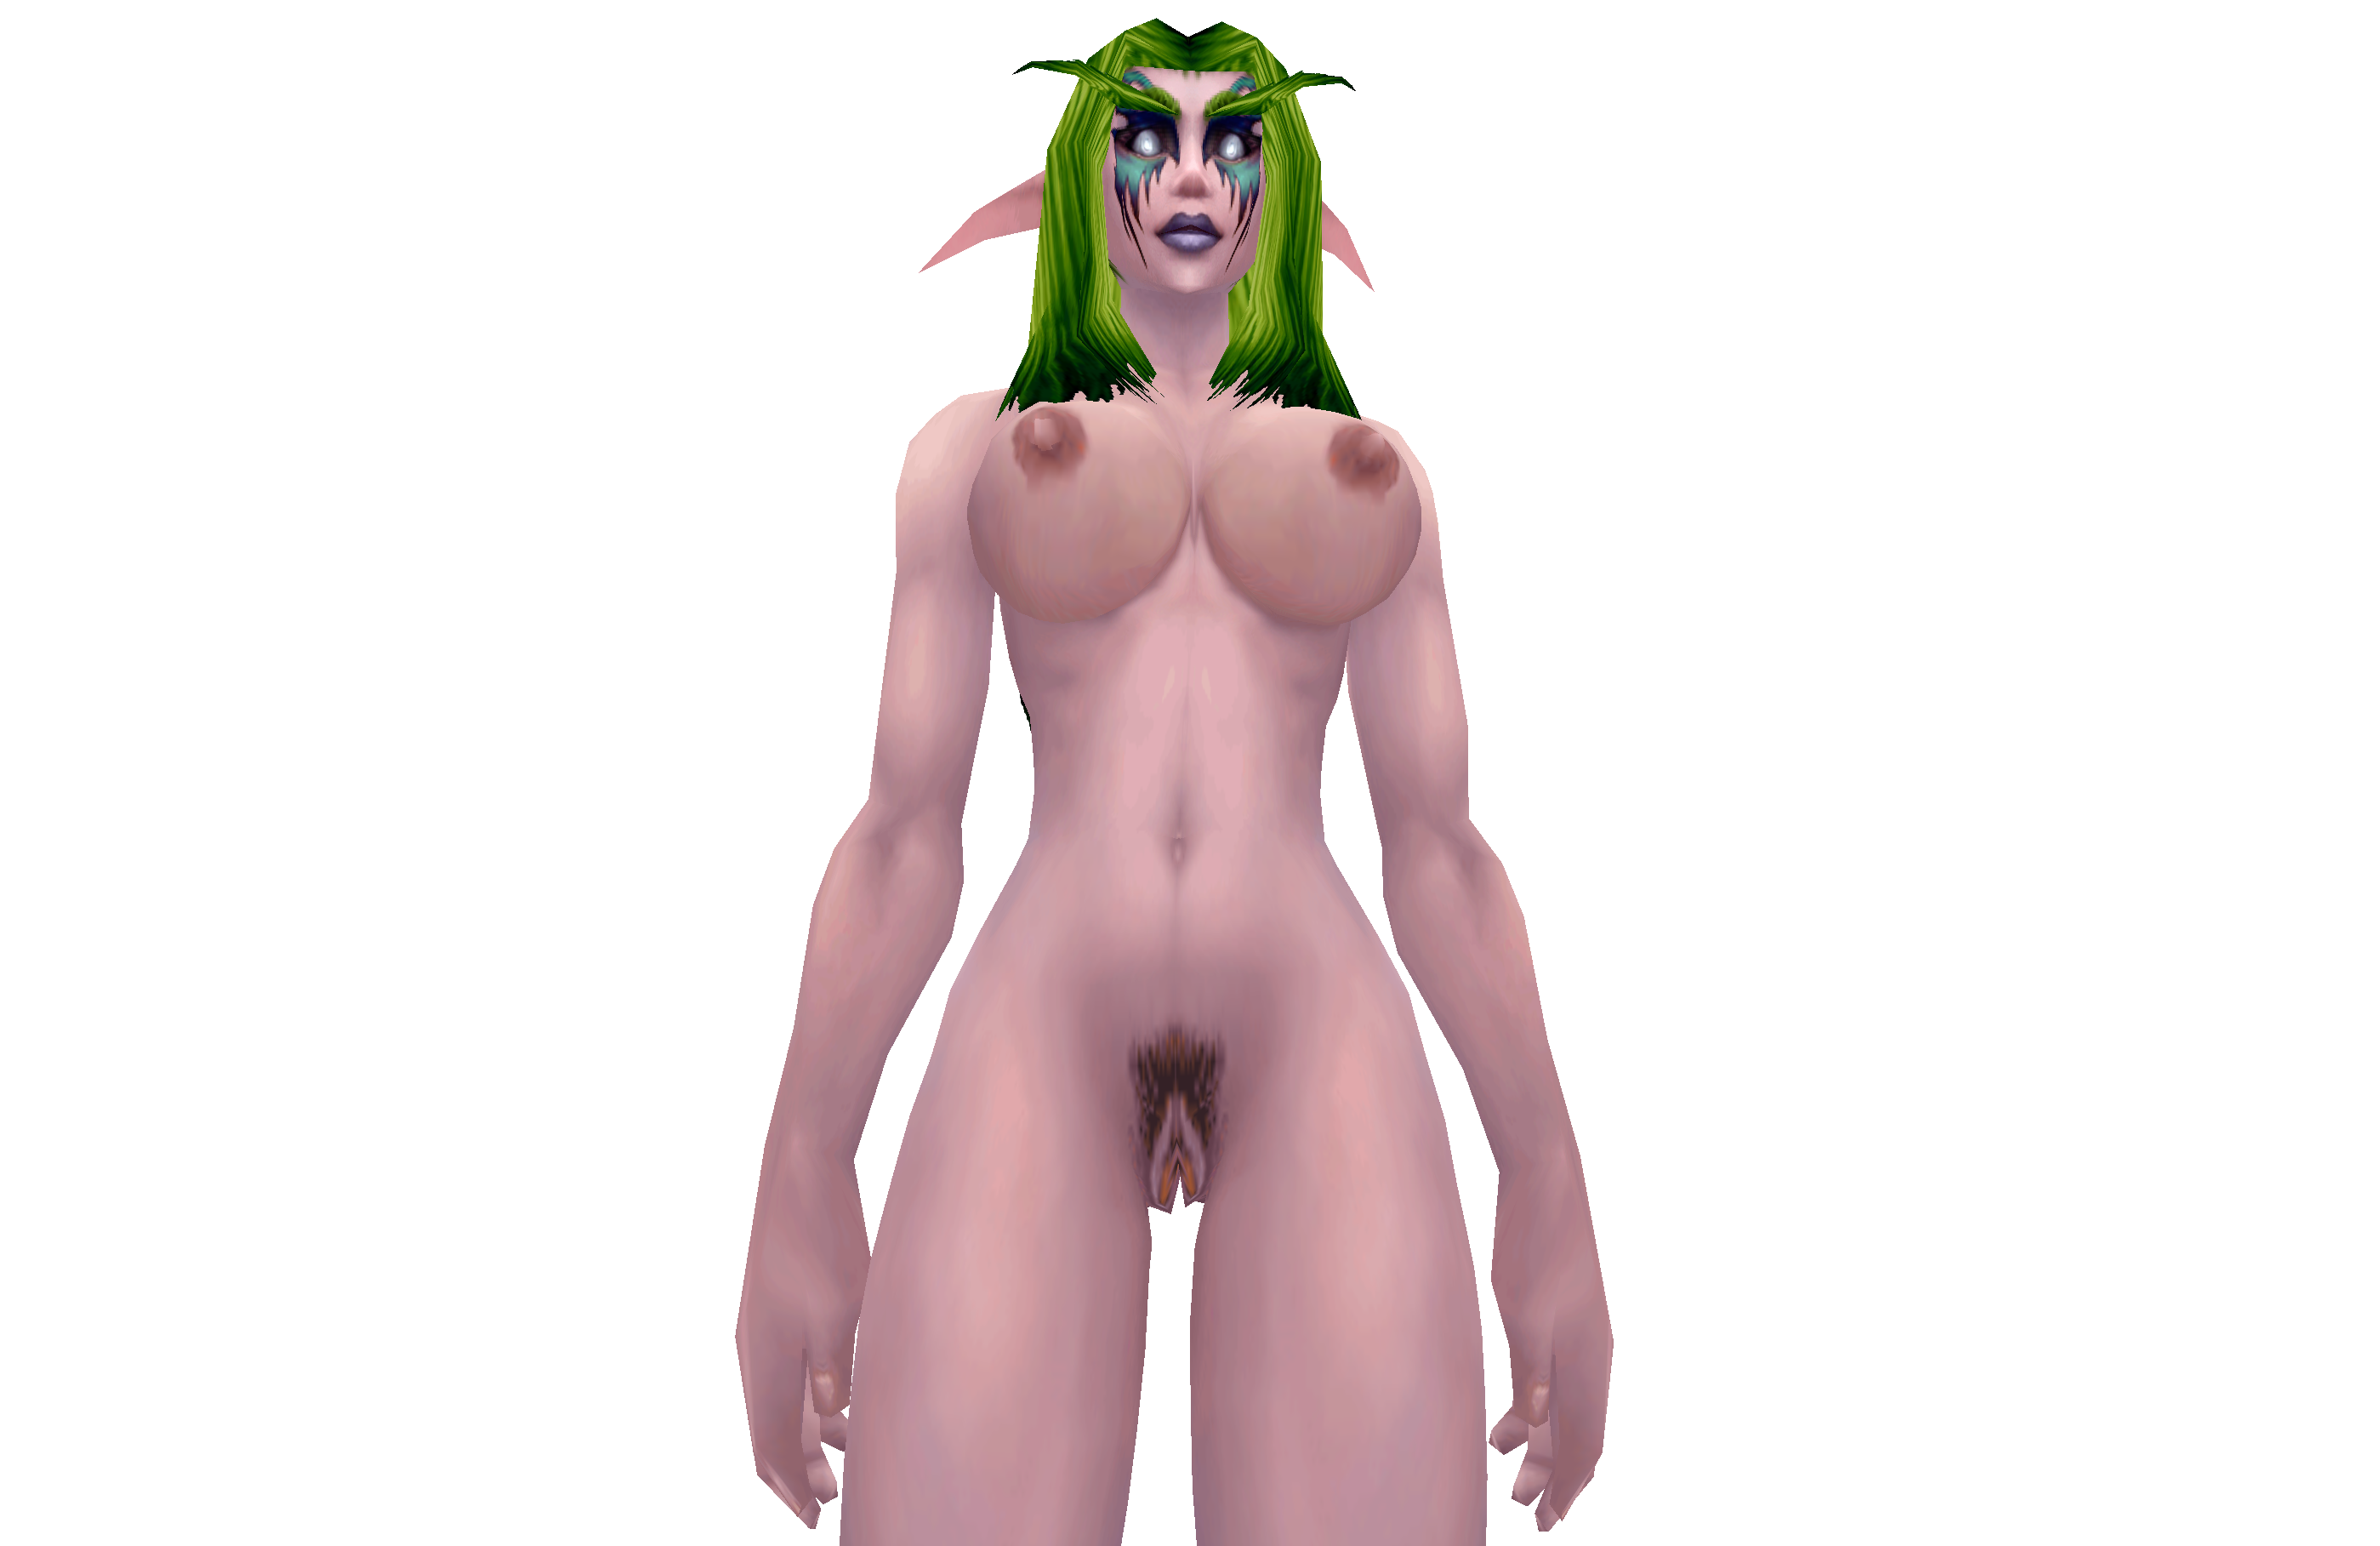 Free Warcraft 3 nude skins exposed image